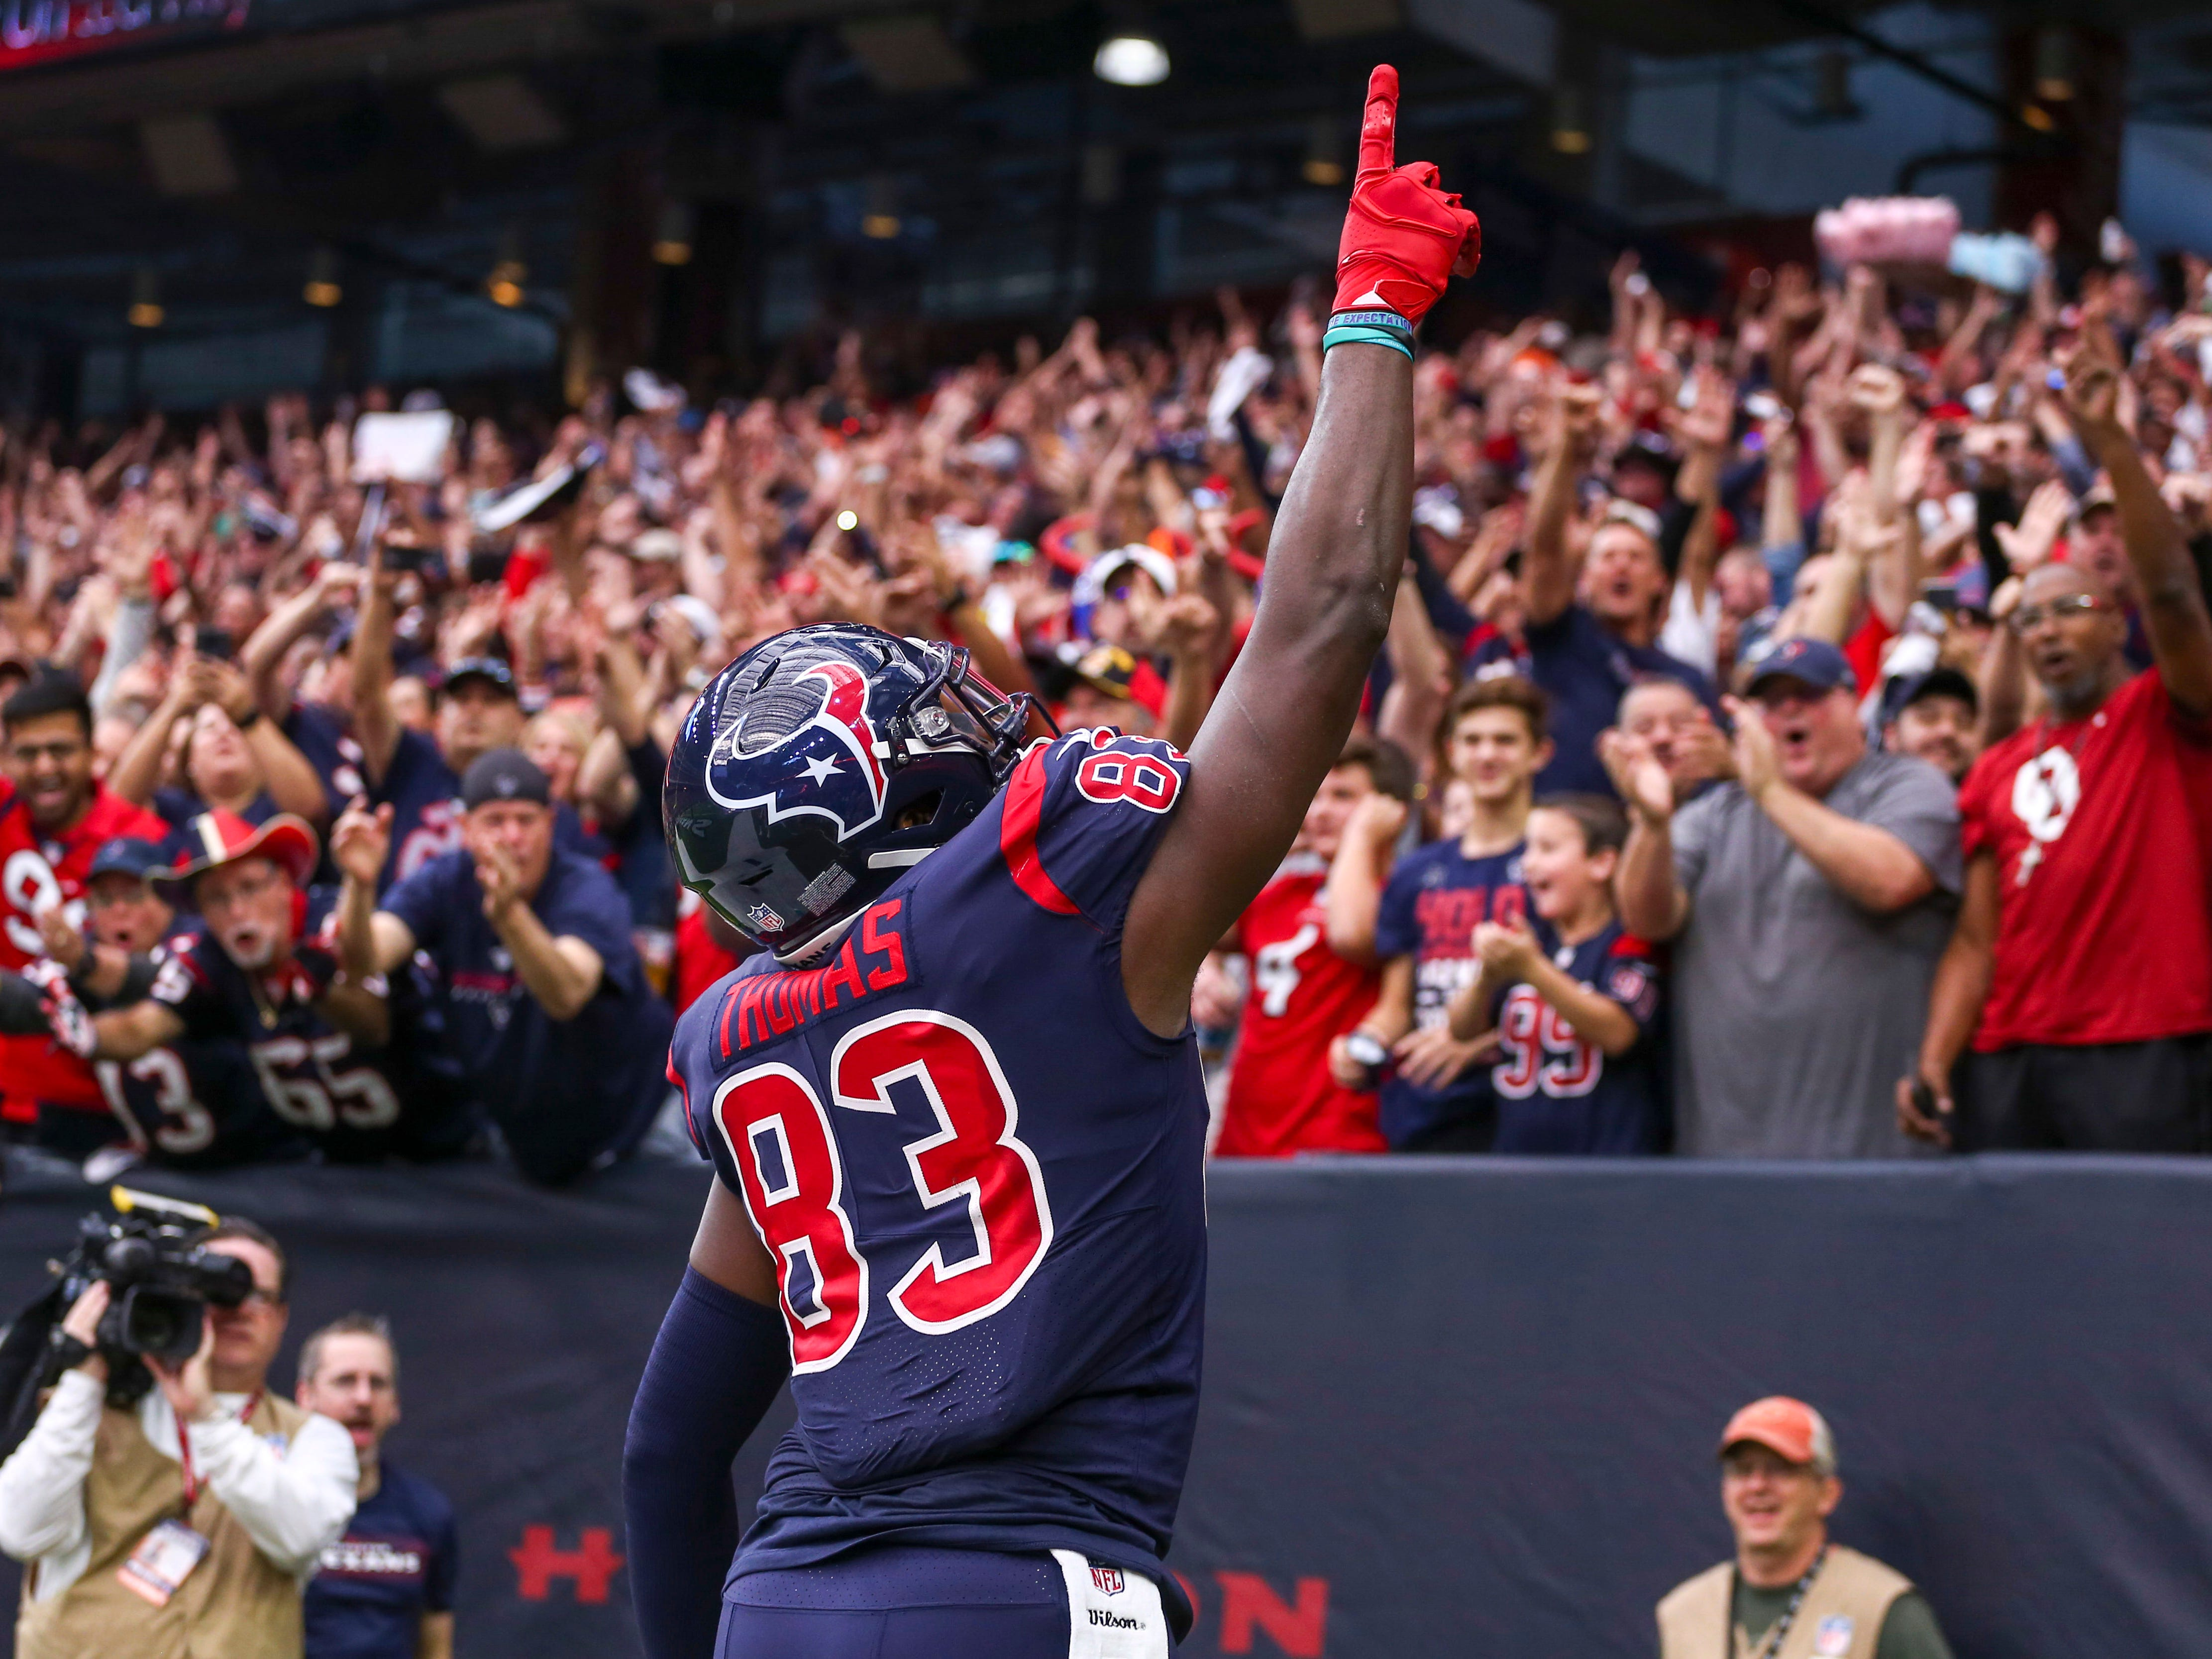 Dec 2, 2018; Houston, TX, USA; Houston Texans tight end Jordan Thomas (83) celebrates after catching a touchdown  pass during the first quarter against the Cleveland Browns at NRG Stadium. Mandatory Credit: John Glaser-USA TODAY Sports ORG XMIT: USATSI-381566 ORIG FILE ID:  20181202_lbm_ga2_054.JPG